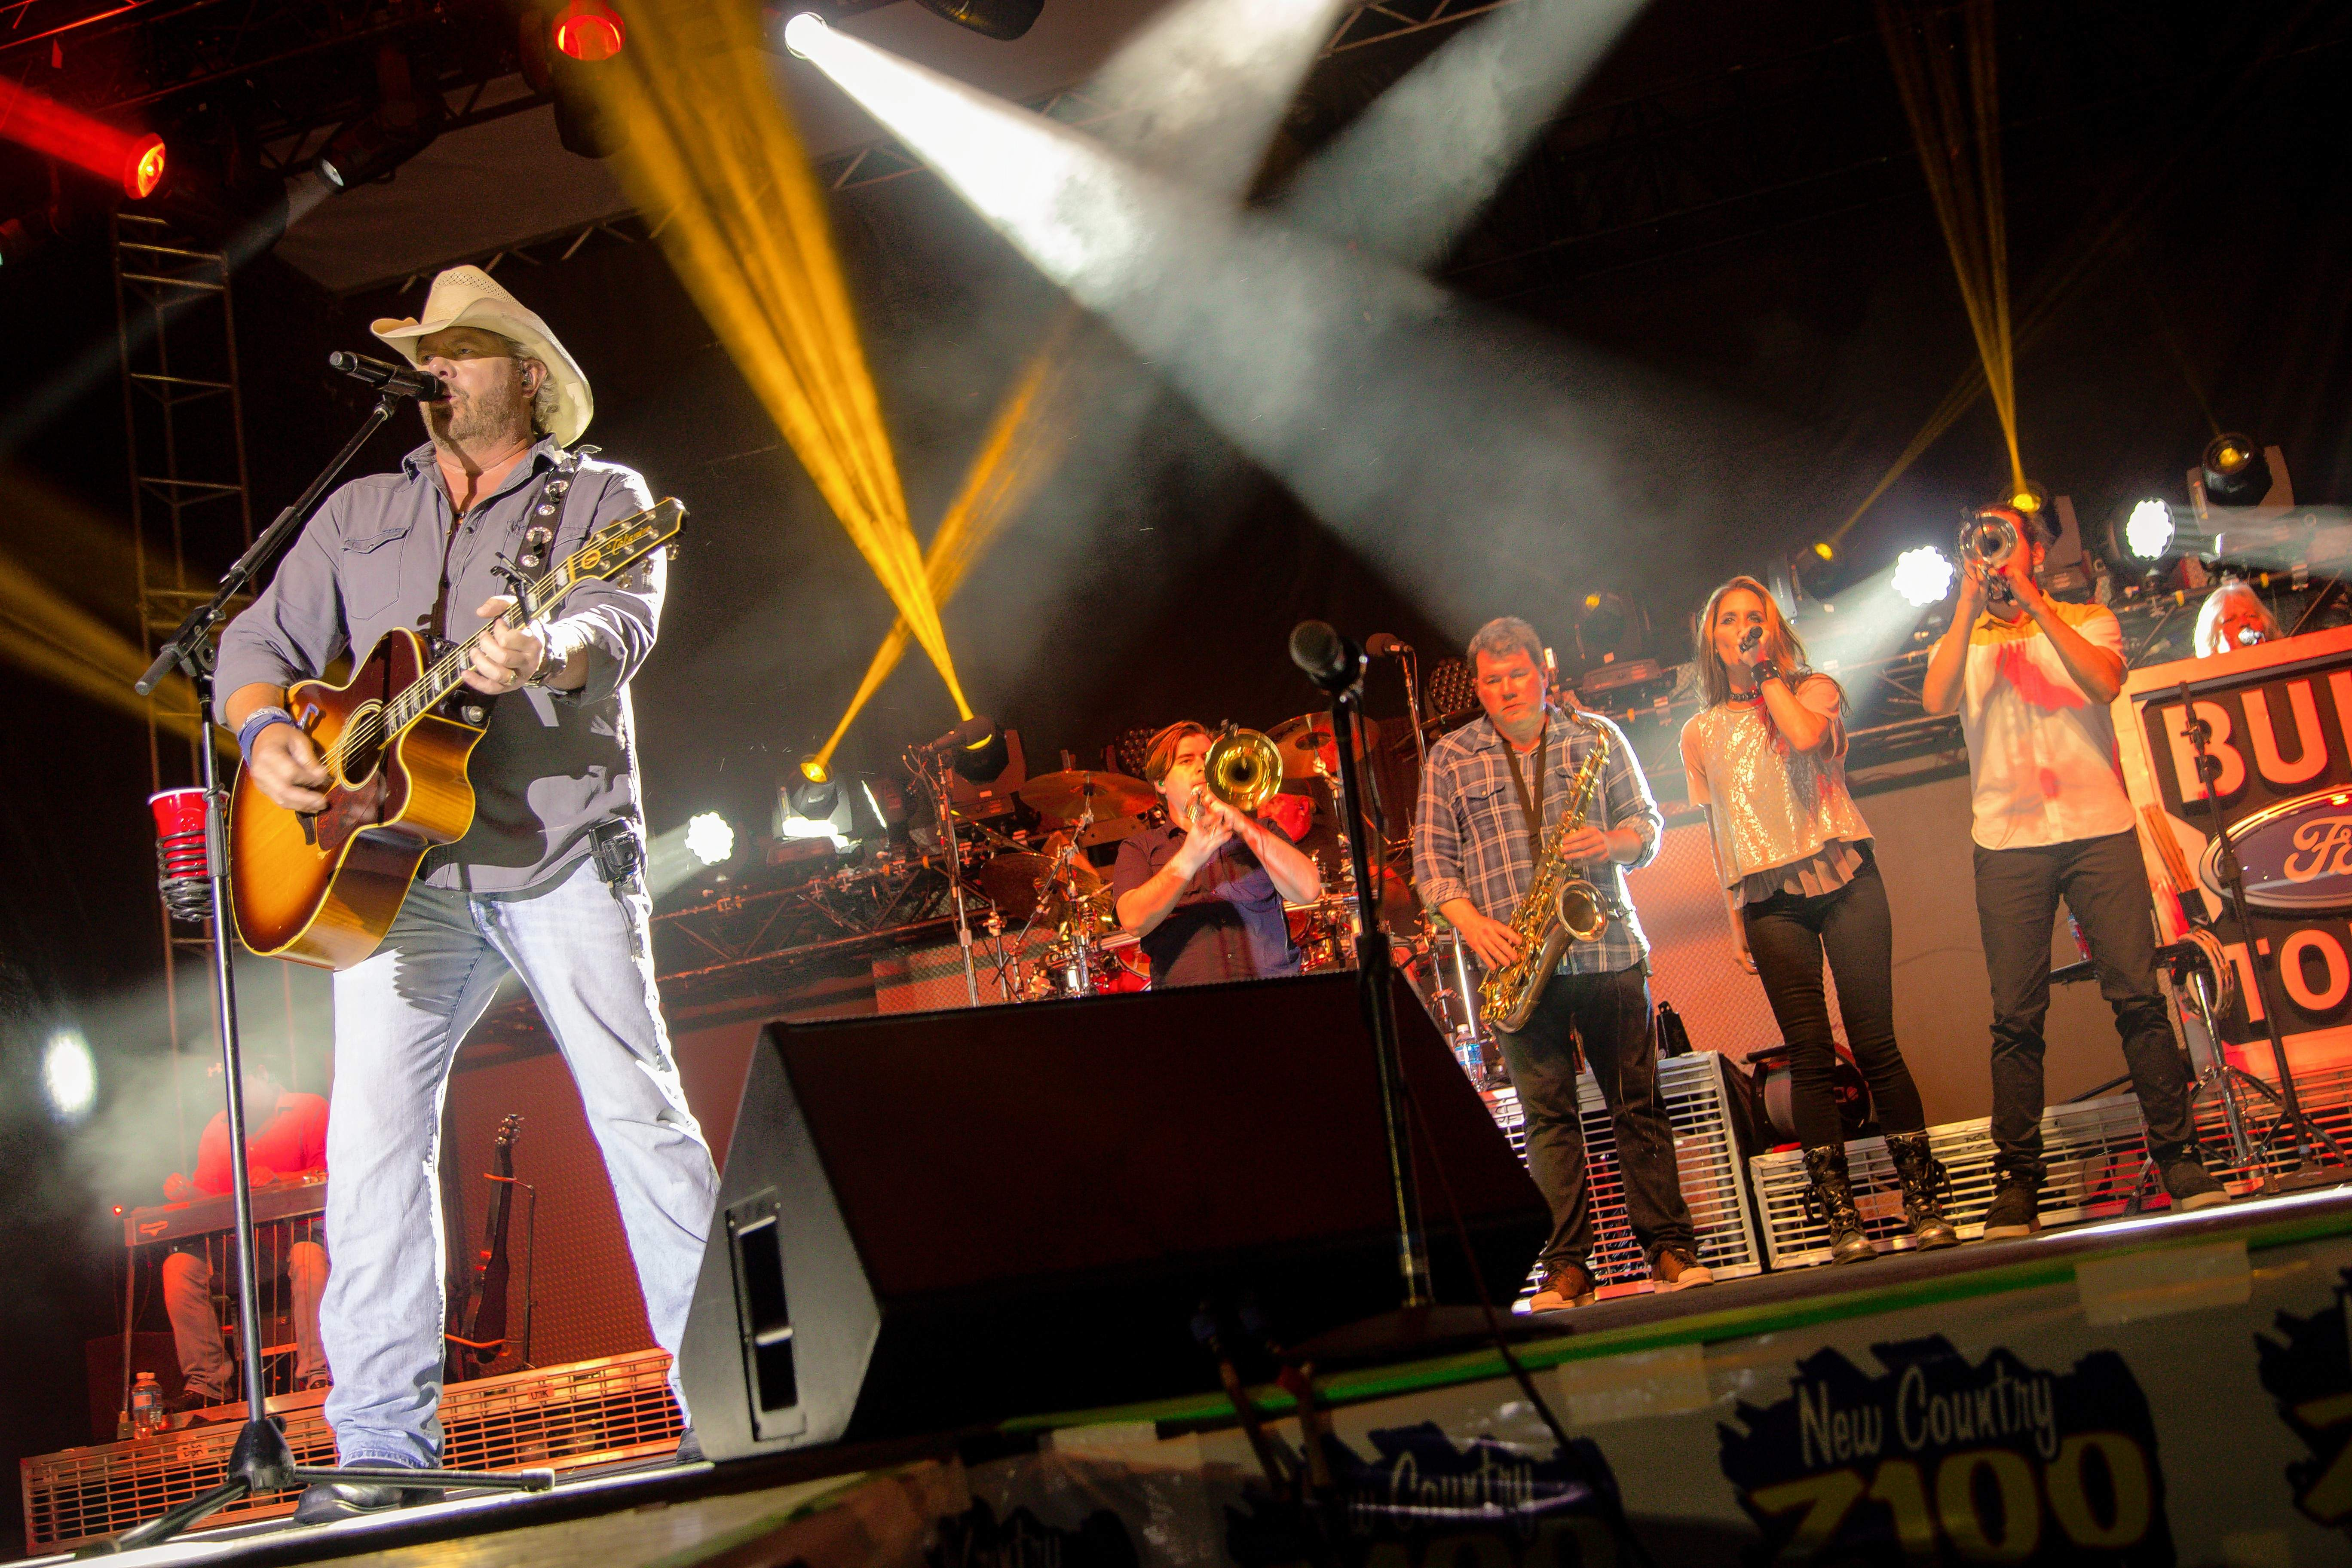 Toby Keith's Interstates and Tailgates Tour was the headline act Friday night.